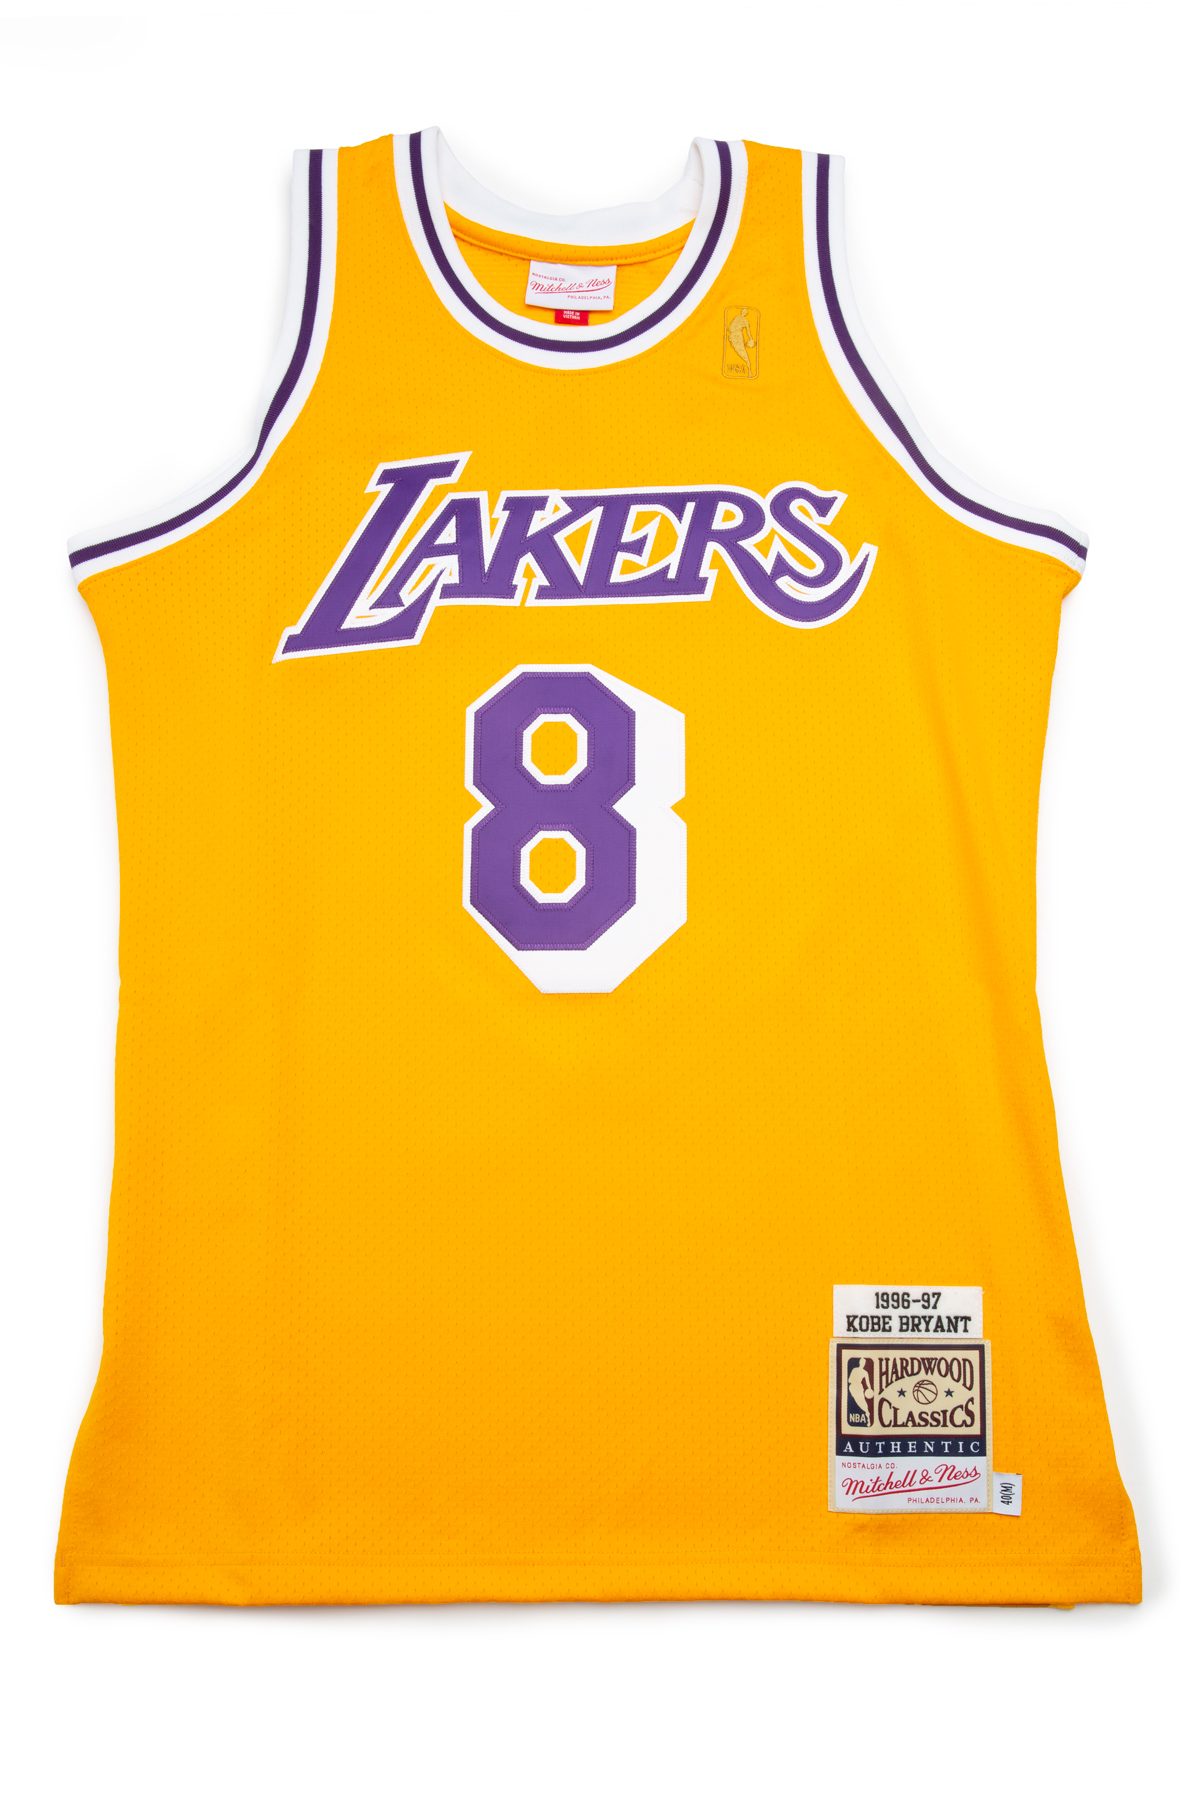 LOS ANGELES LAKERS KOBE BRYANT 1996-97 AUTHENTIC HOME JERSEY